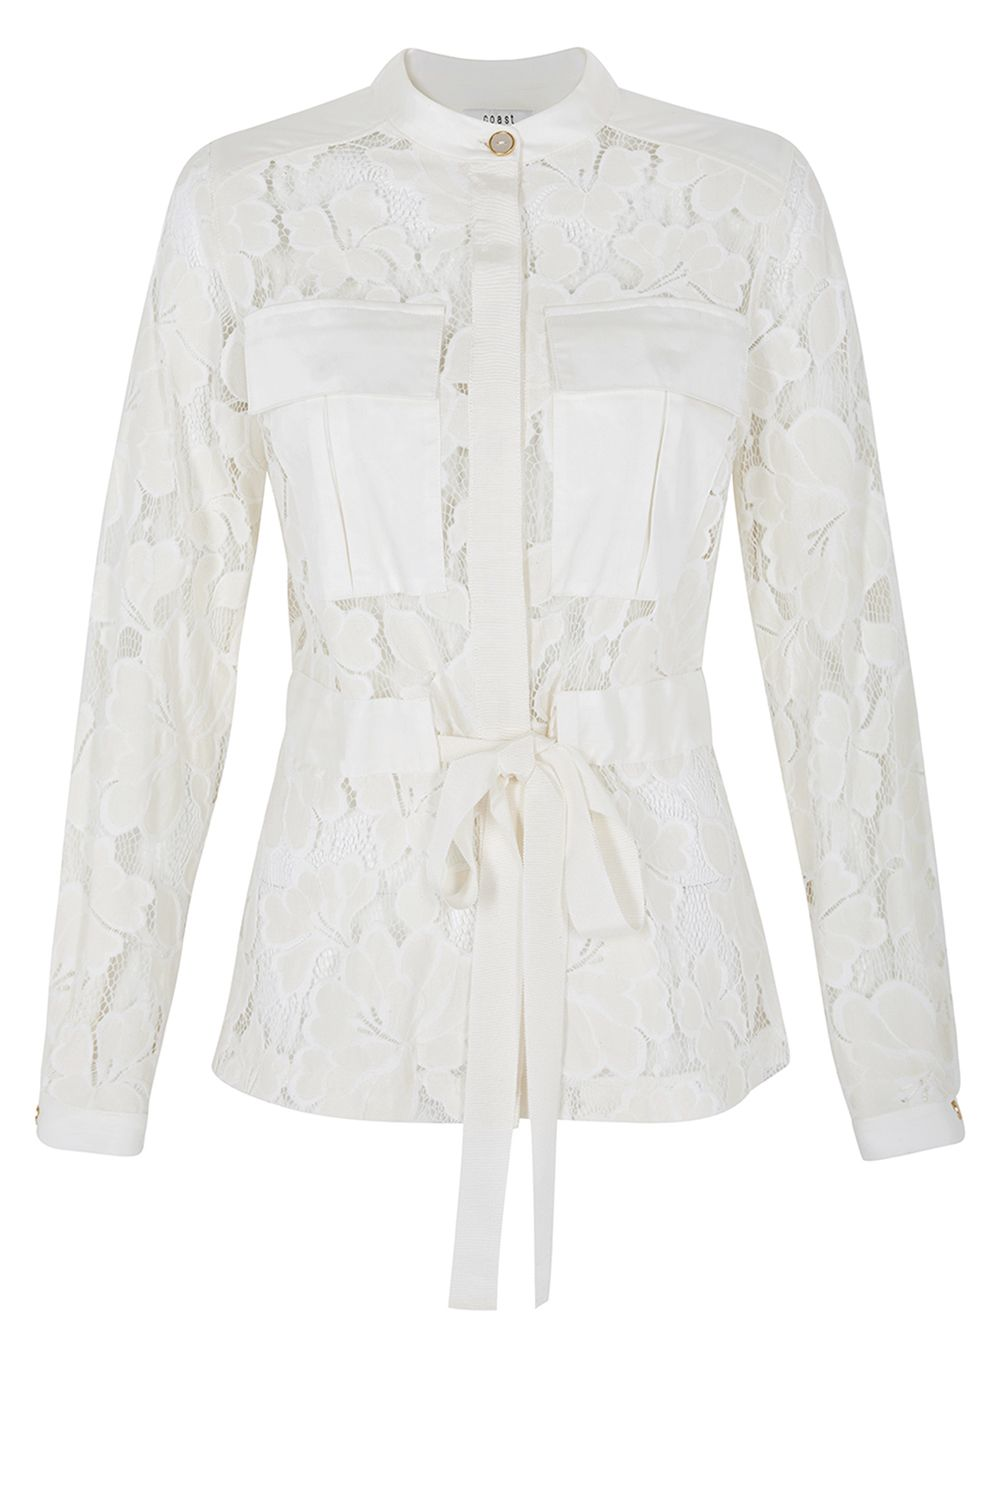 Coast Arianna Lace Shacket, White